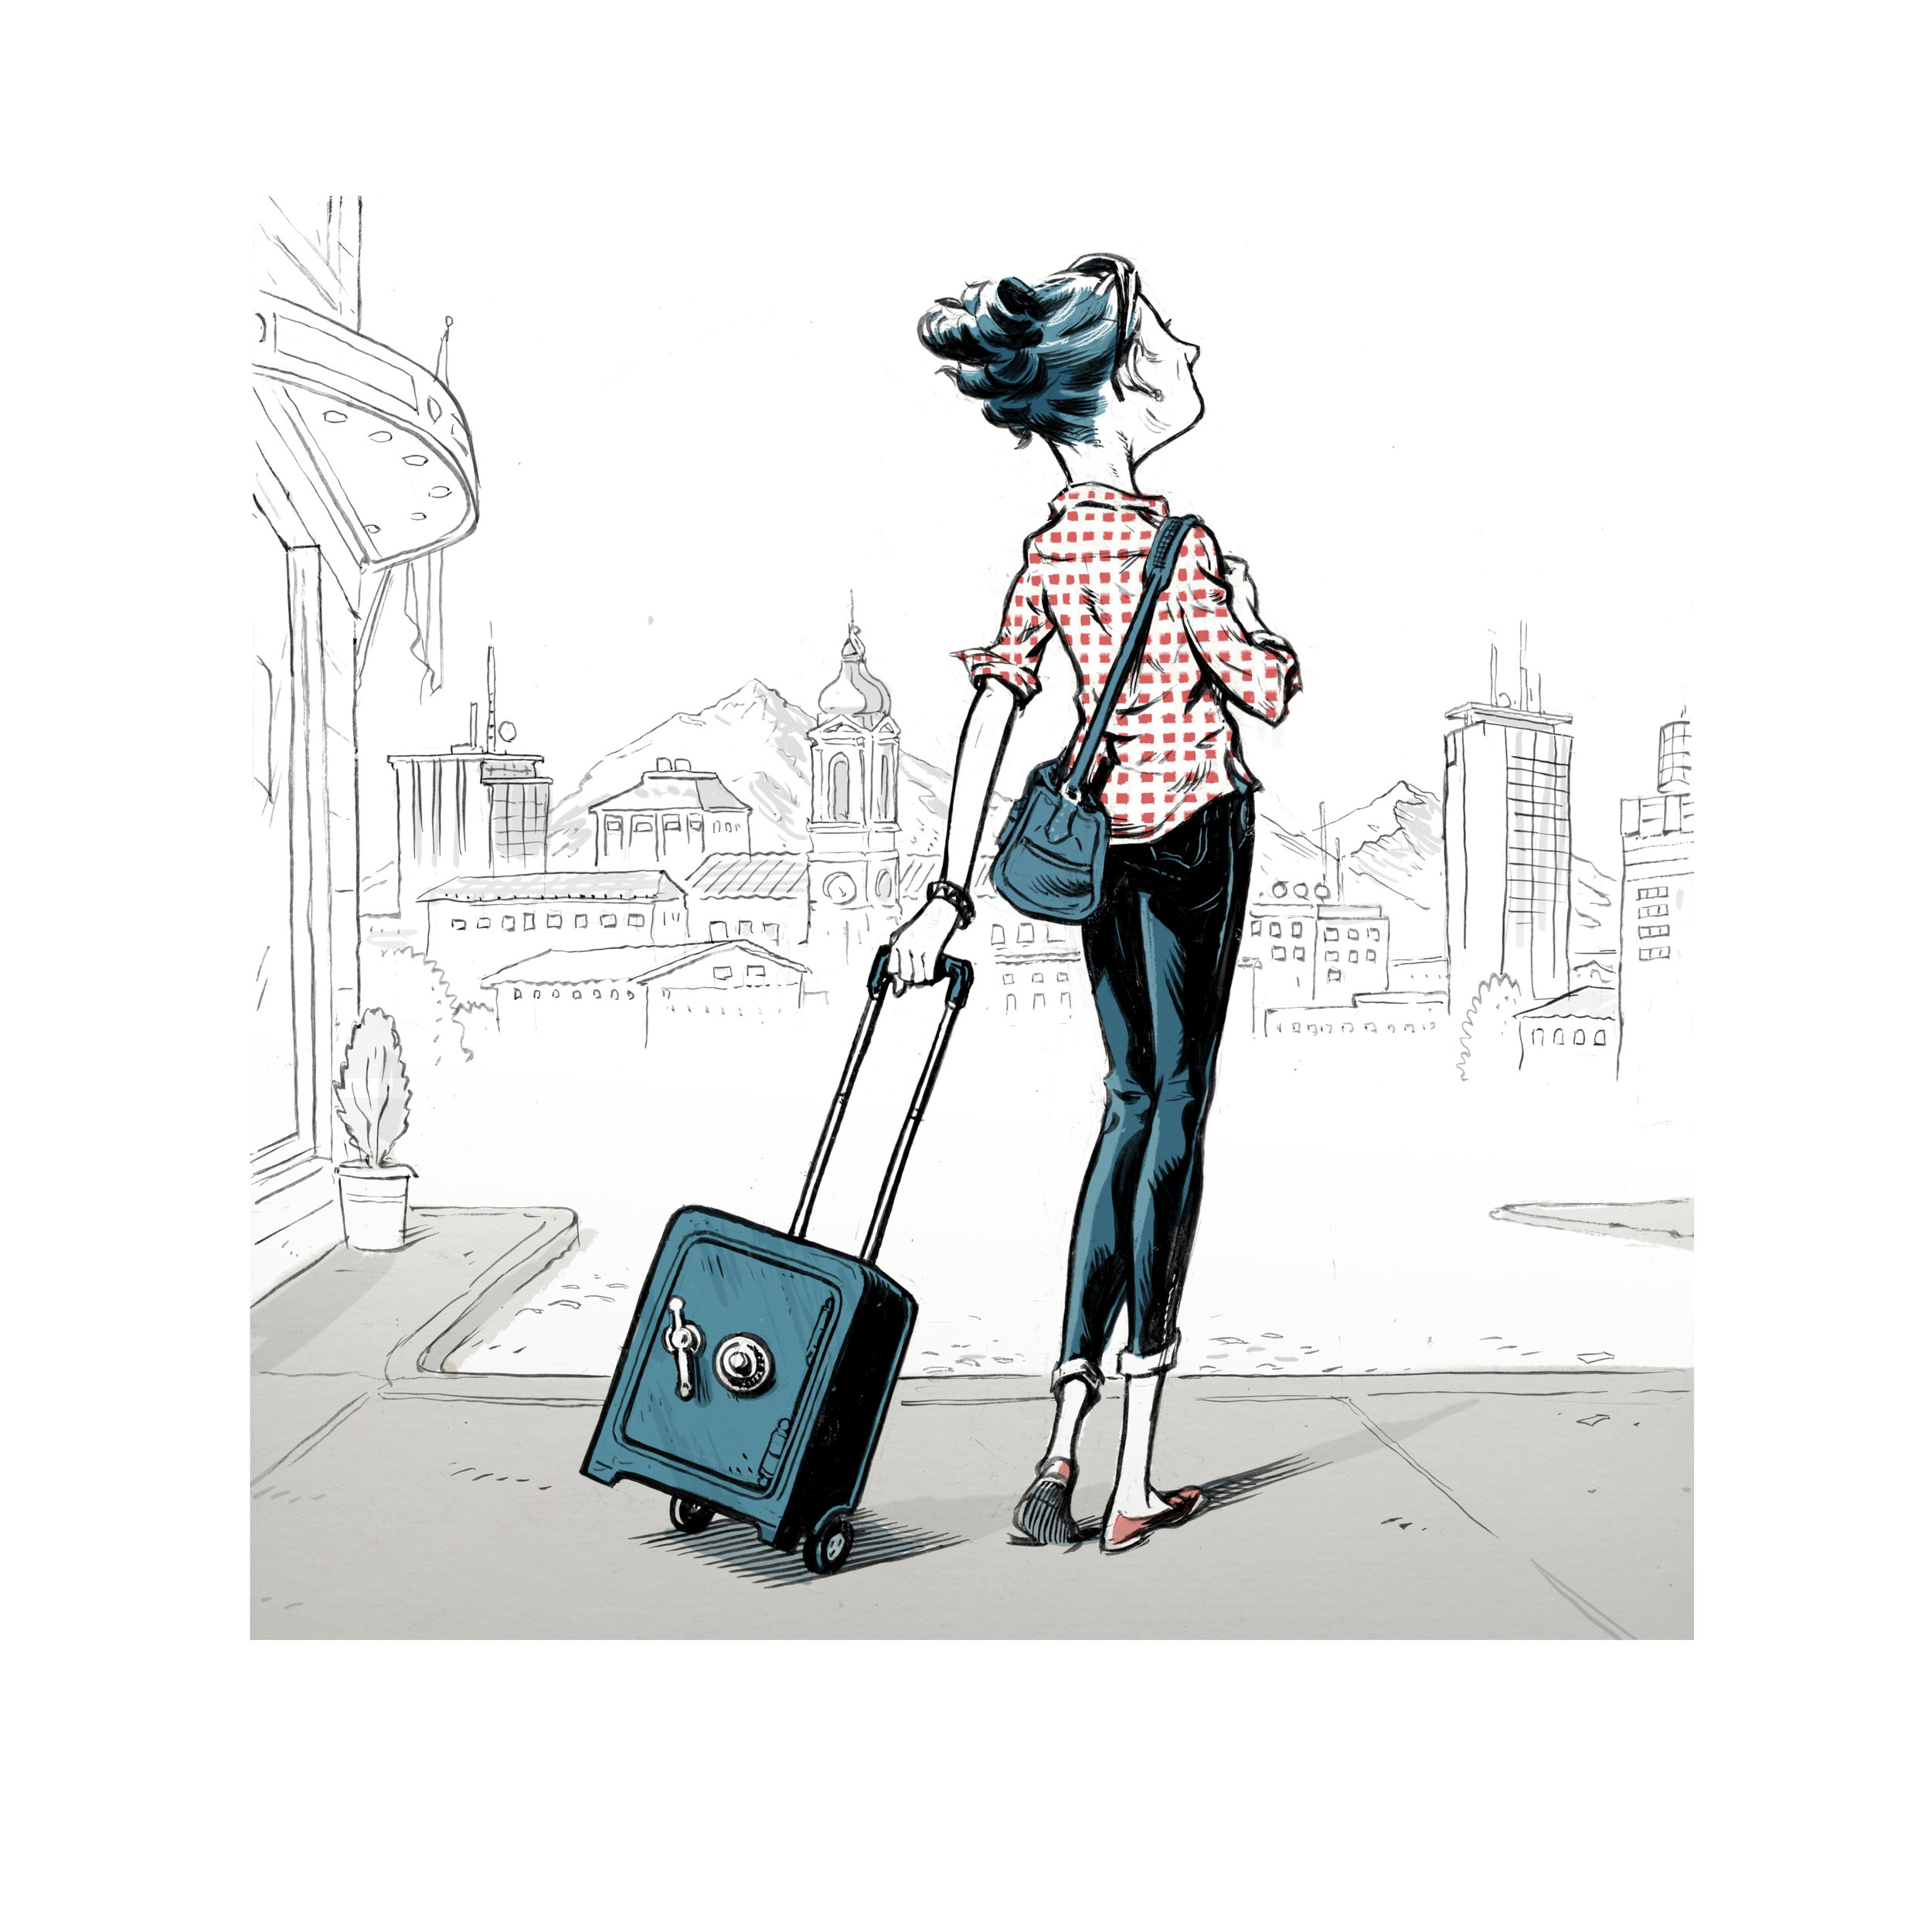 Travel Tips: Preventing Theft